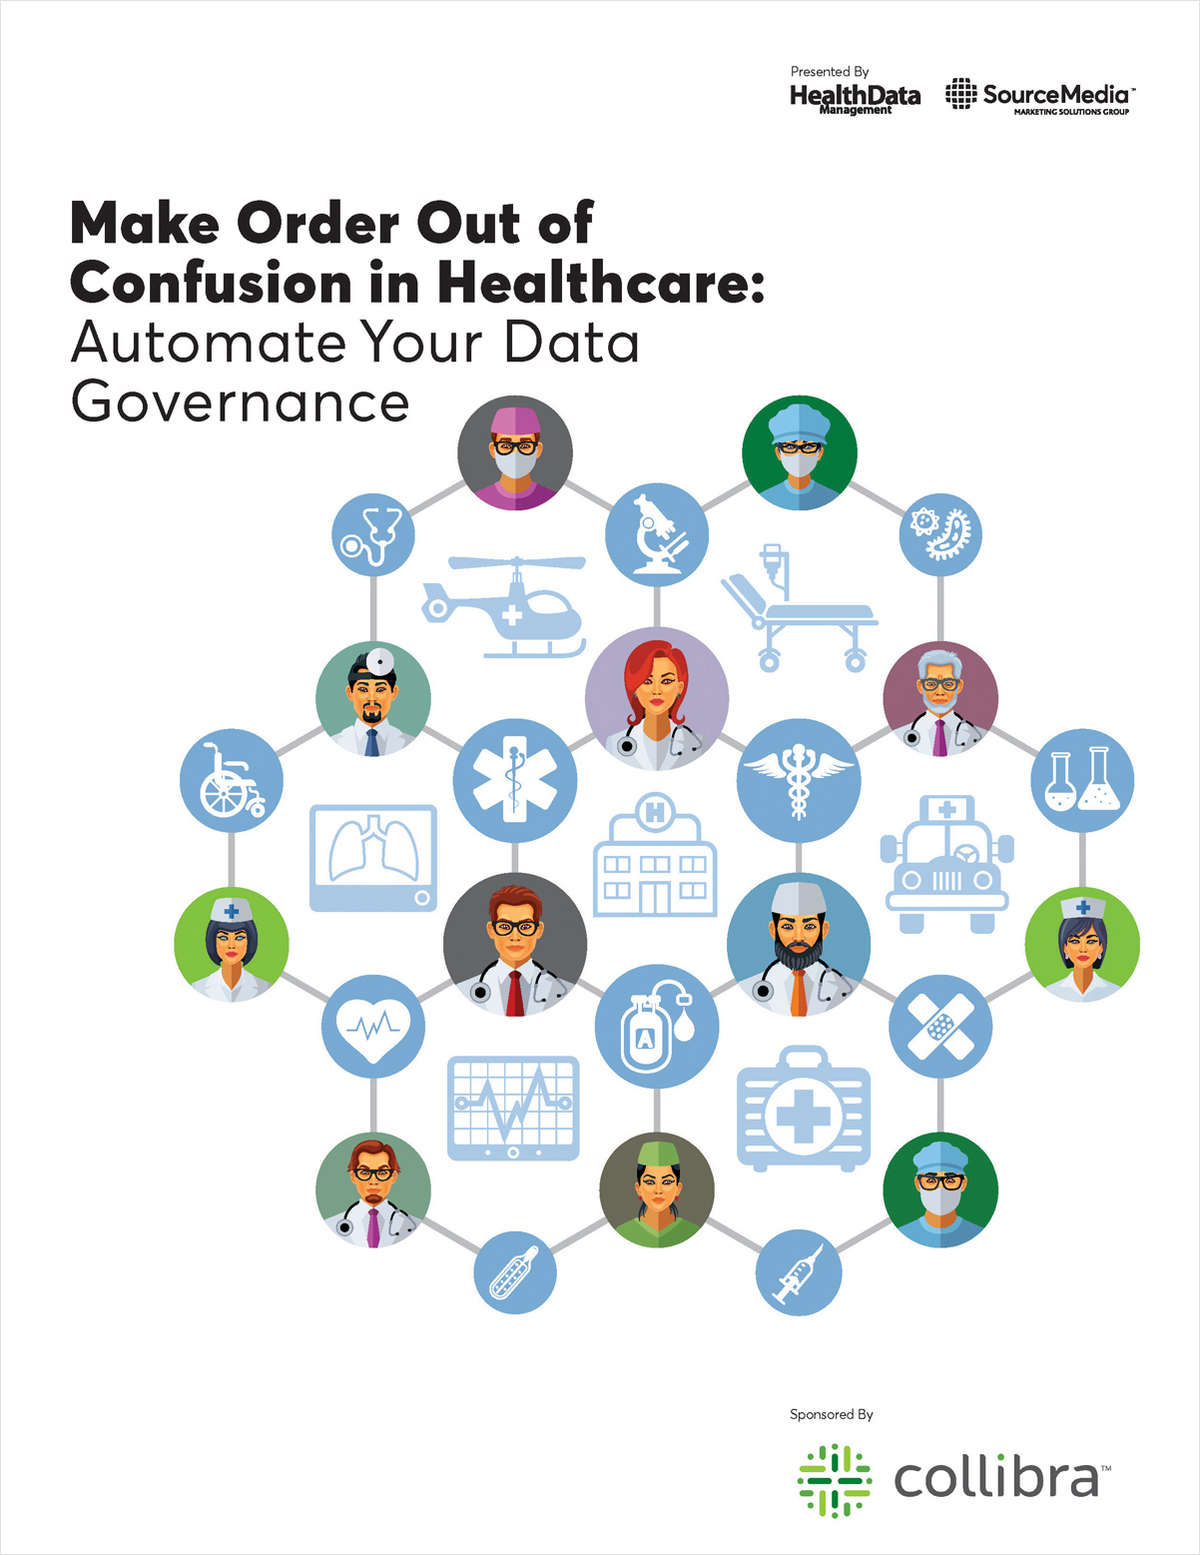 Make Order Out of Confusion with Automated Data Governance